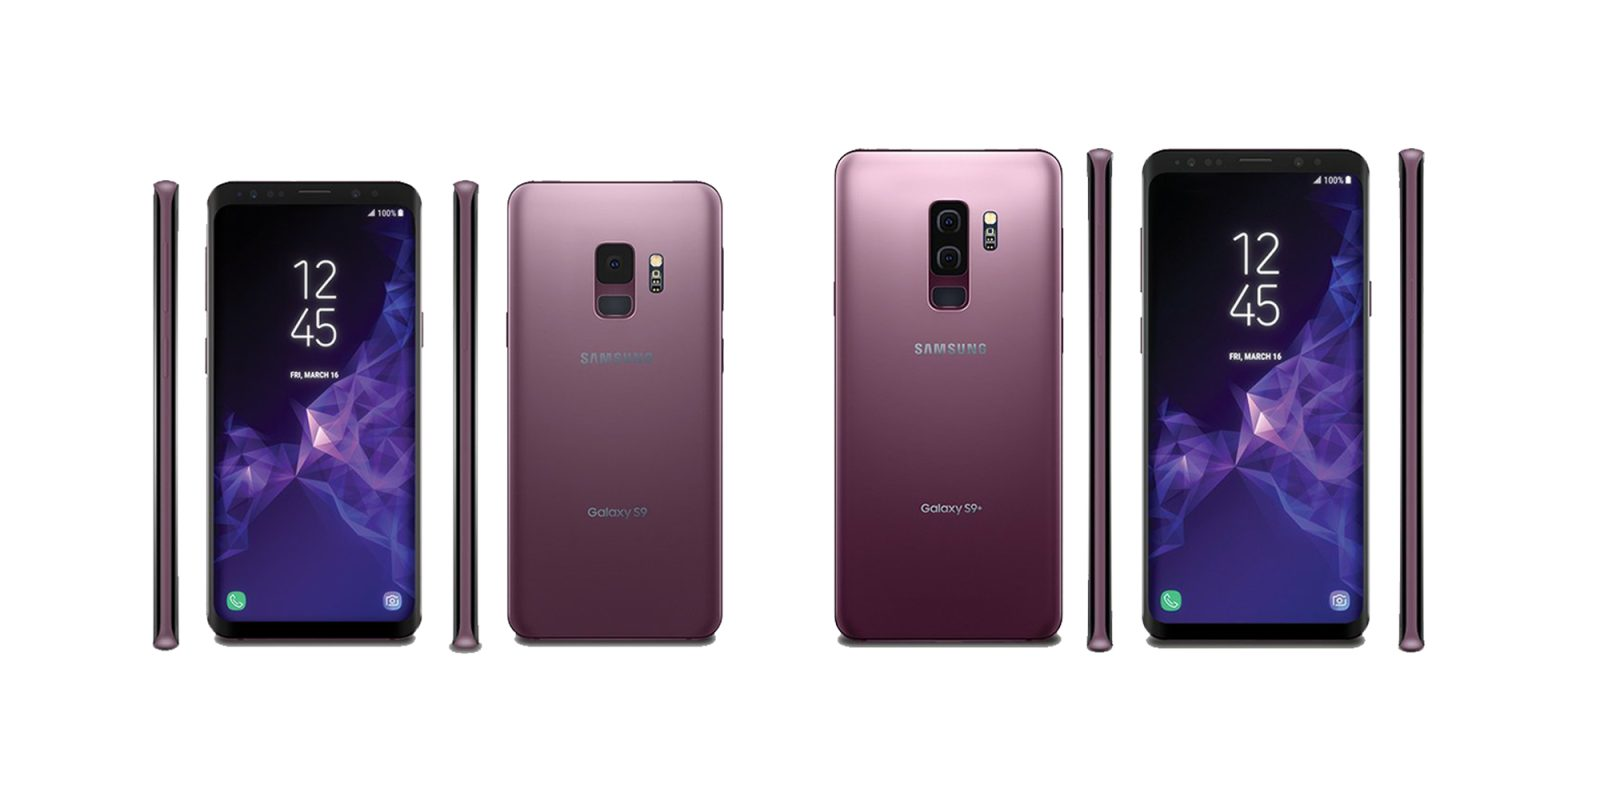 Samsung Galaxy S9 and Galaxy S9 Plus price and availability